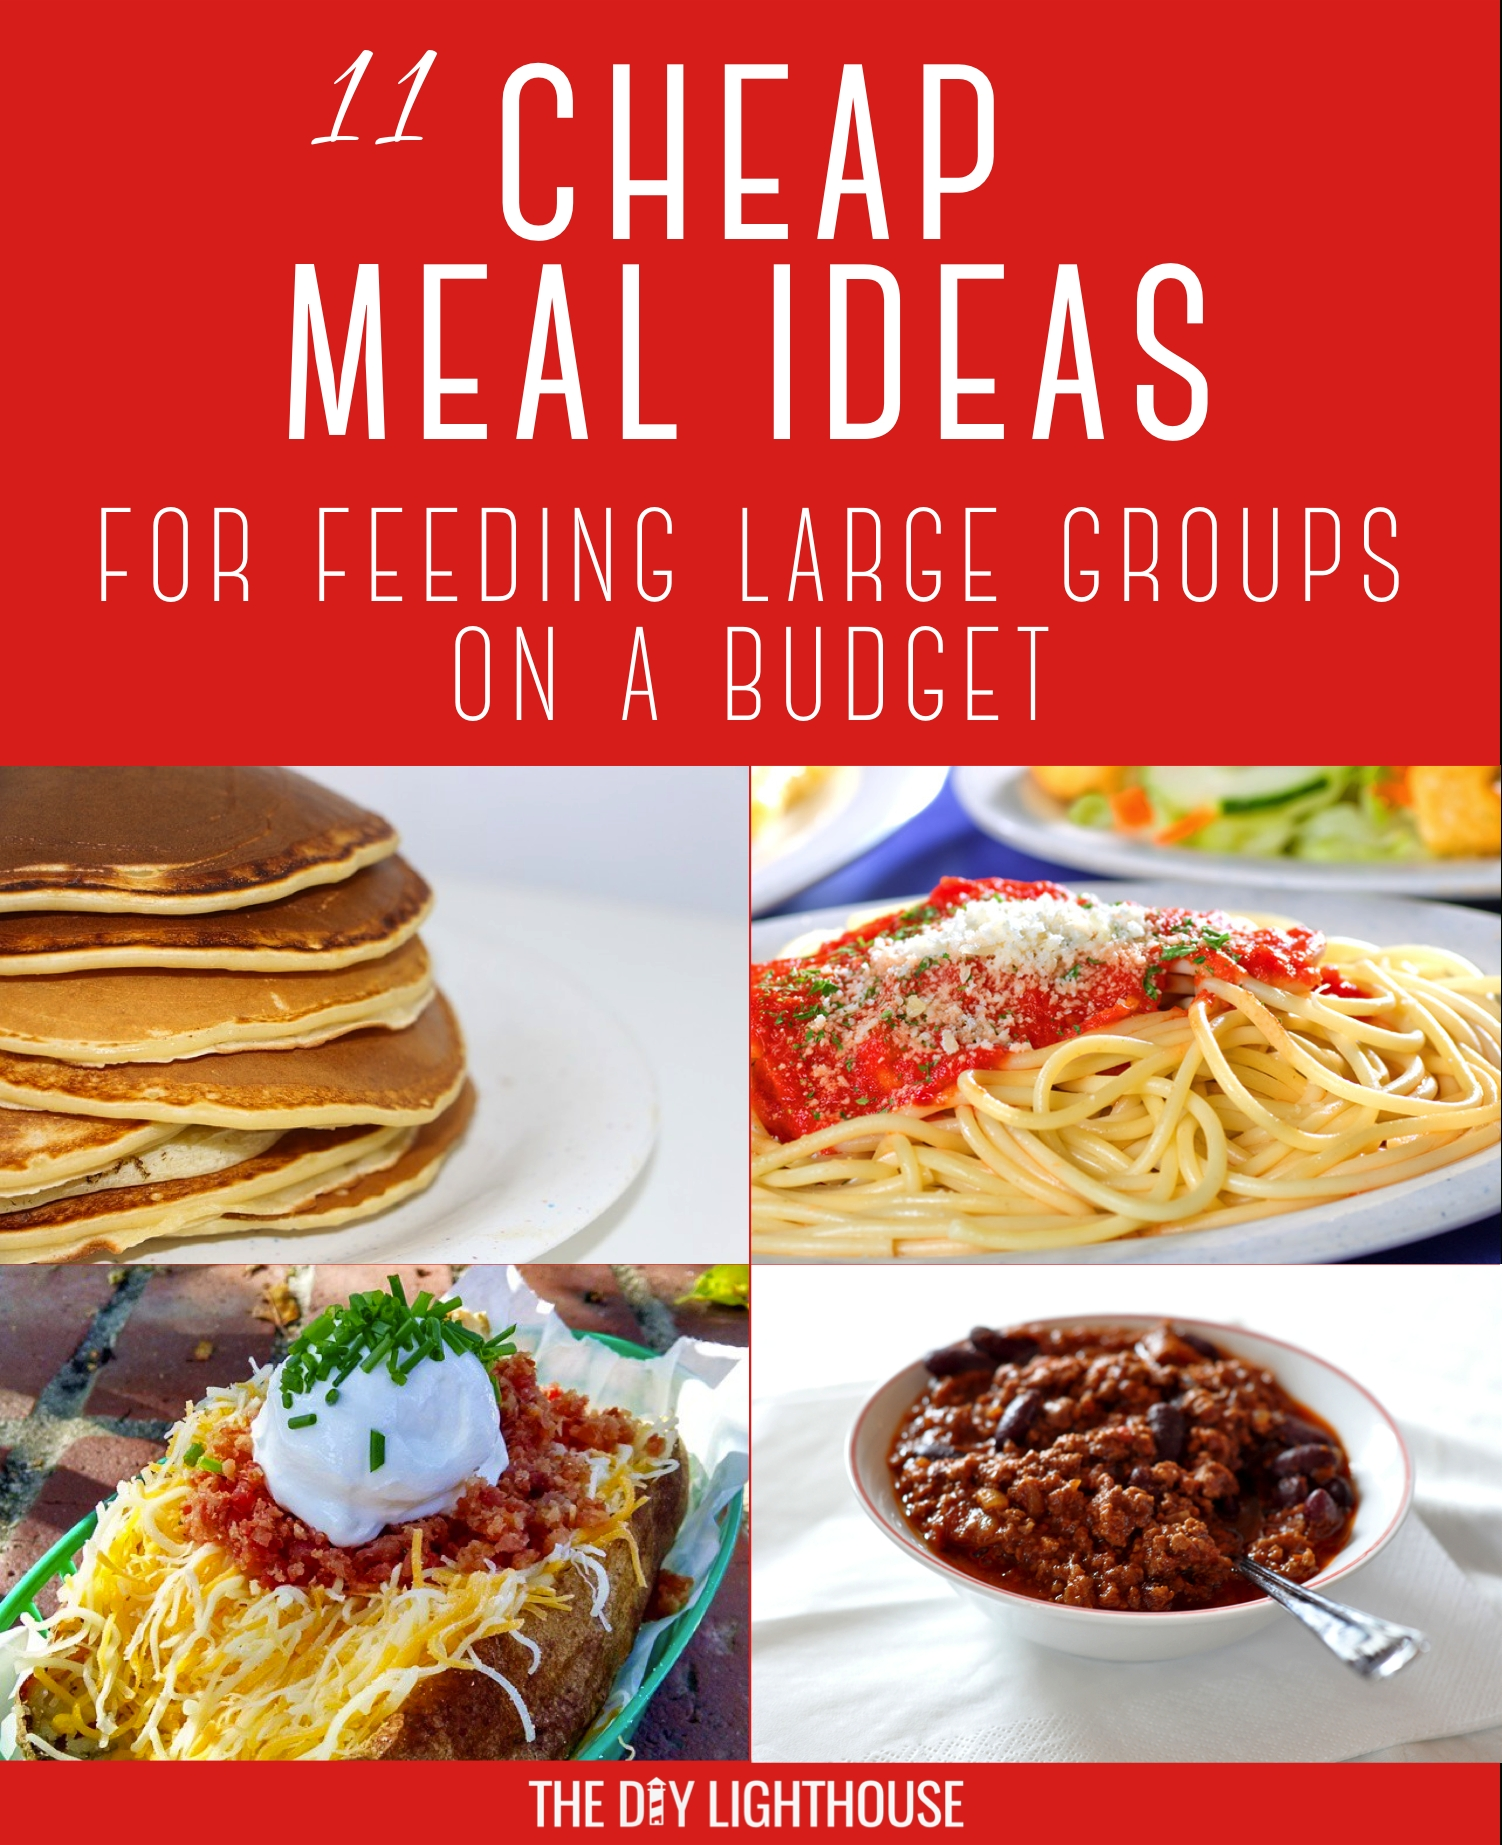 10 Perfect Cheap Food Ideas For Wedding cheap meals for feeding large groups 16 2020